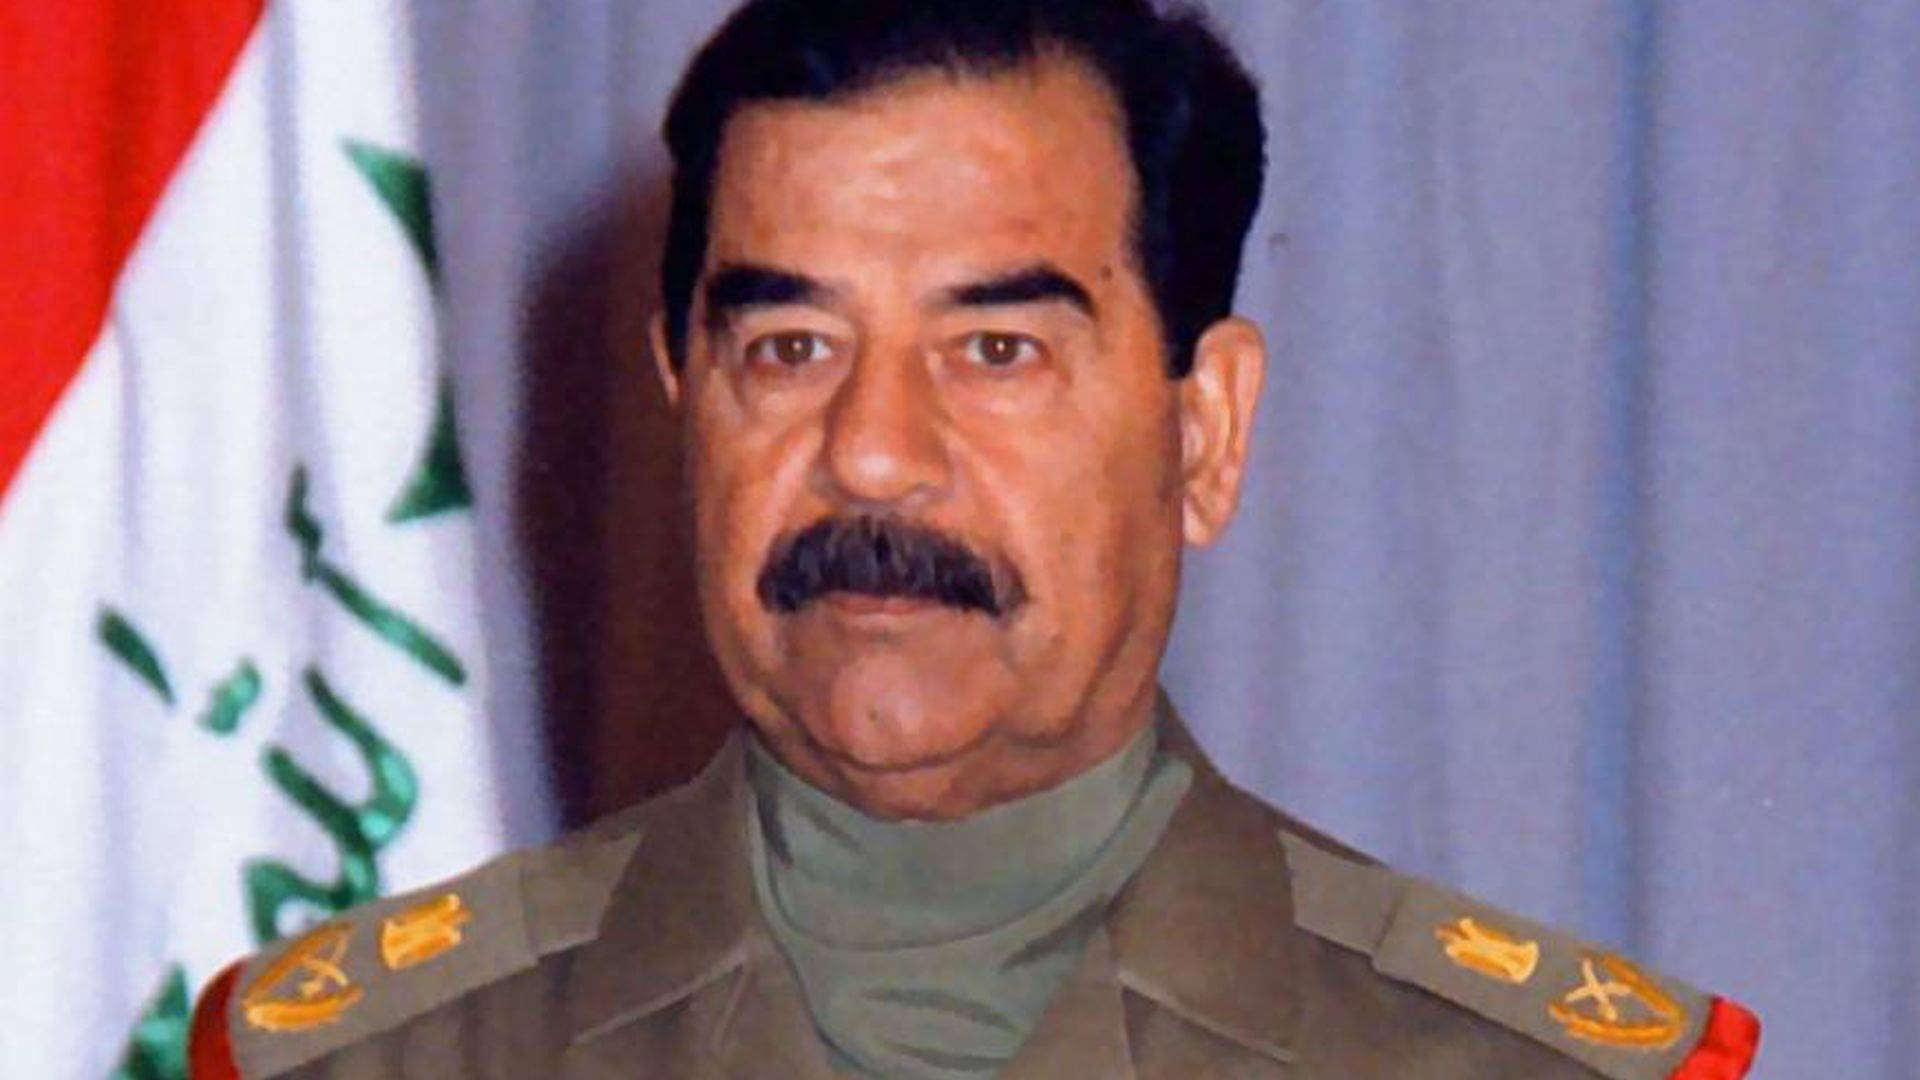 CIA Interrogator: At Time of U S  Invasion, Saddam Hussein Was